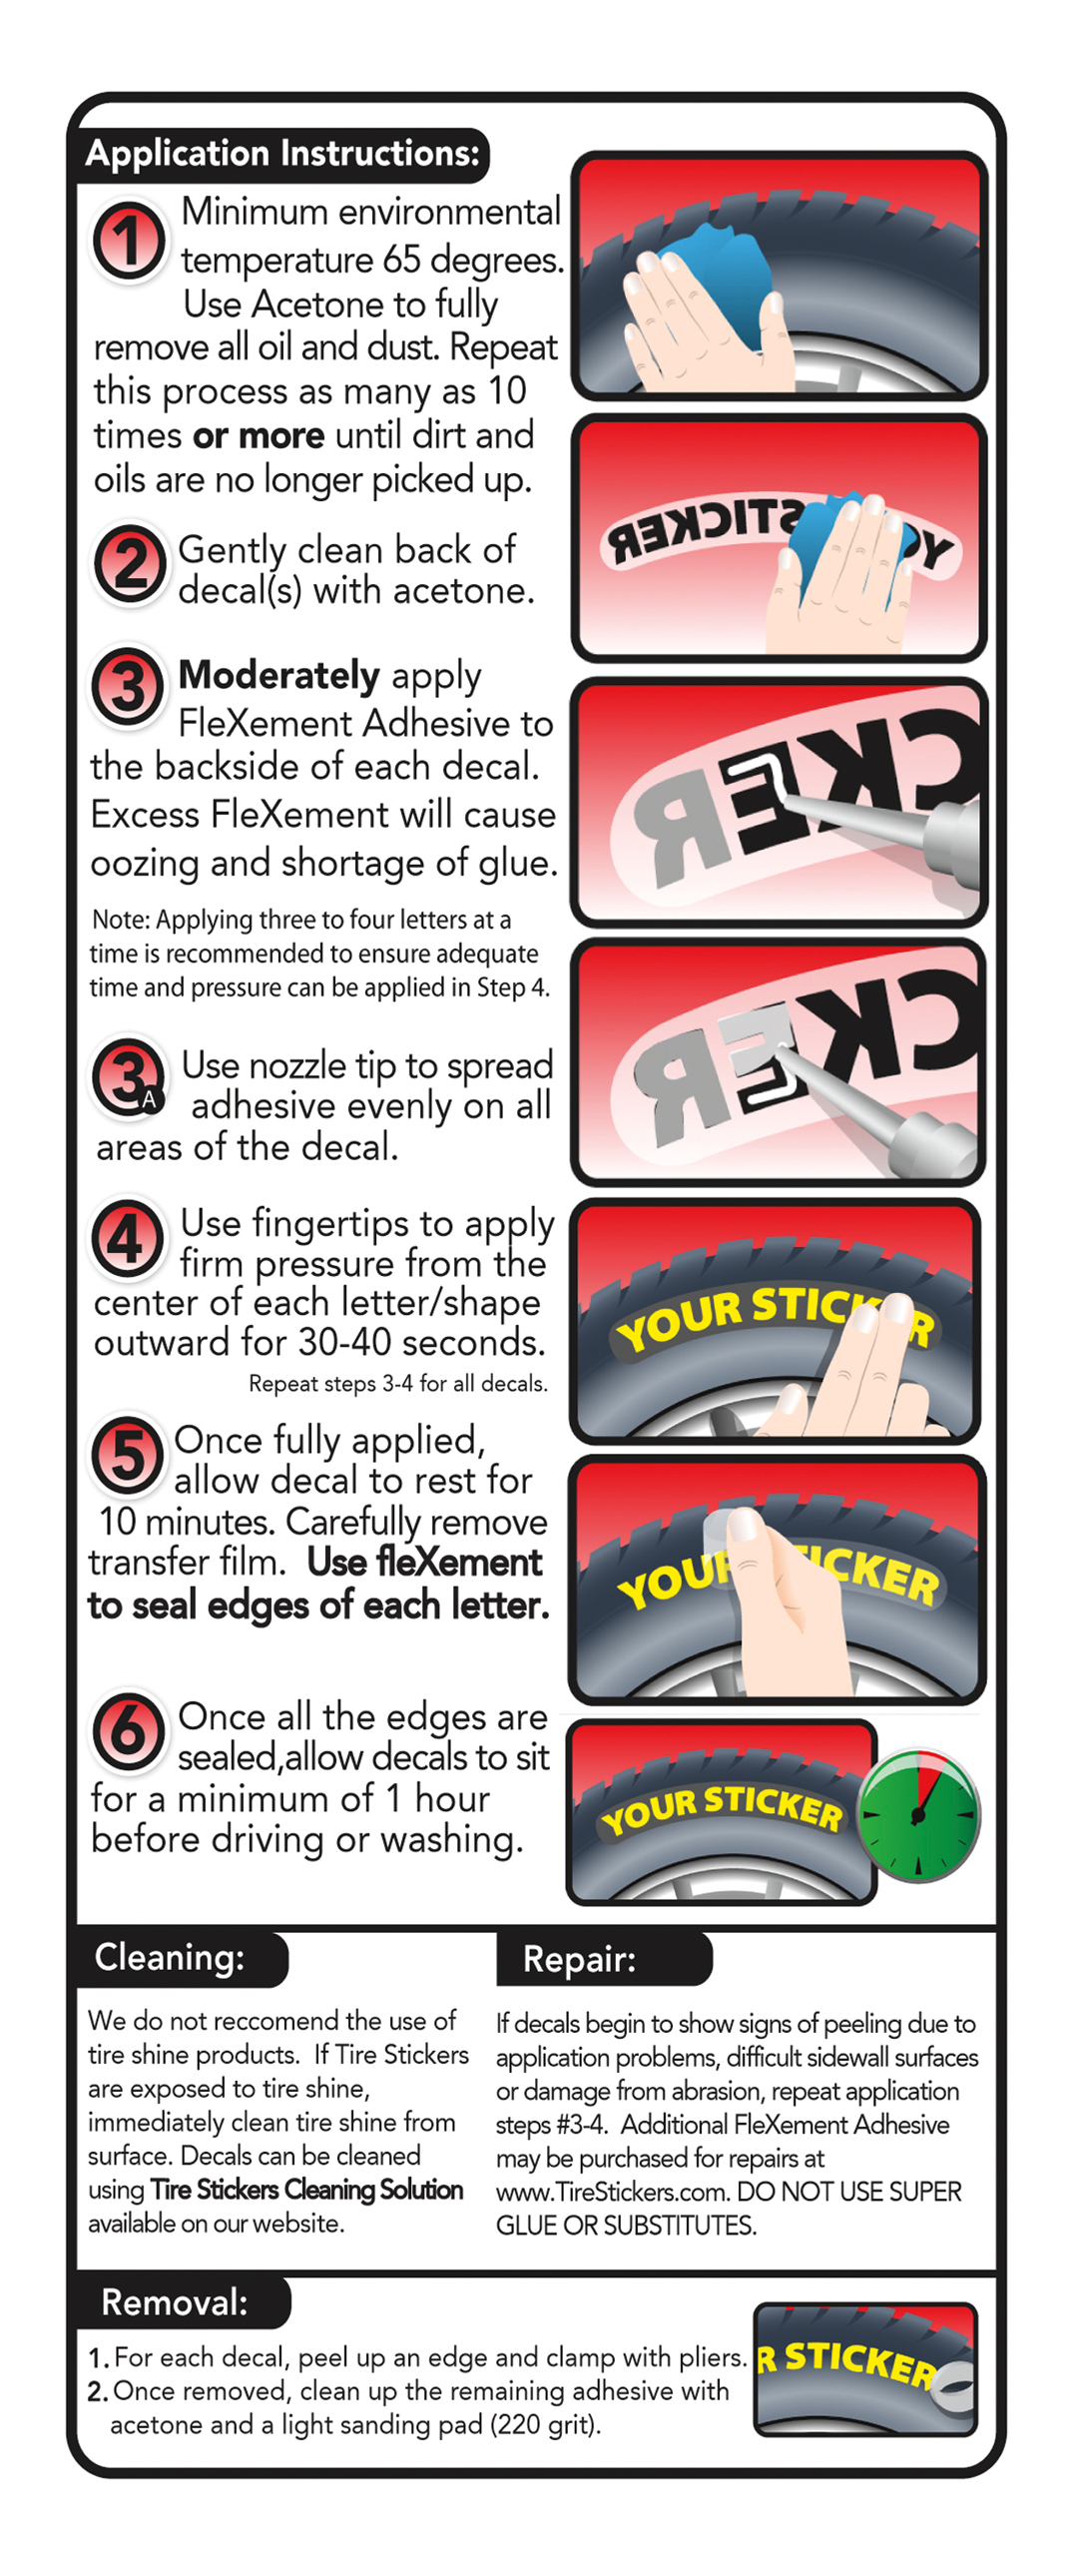 Permanent Tire Stickers - Application Guide Instructions